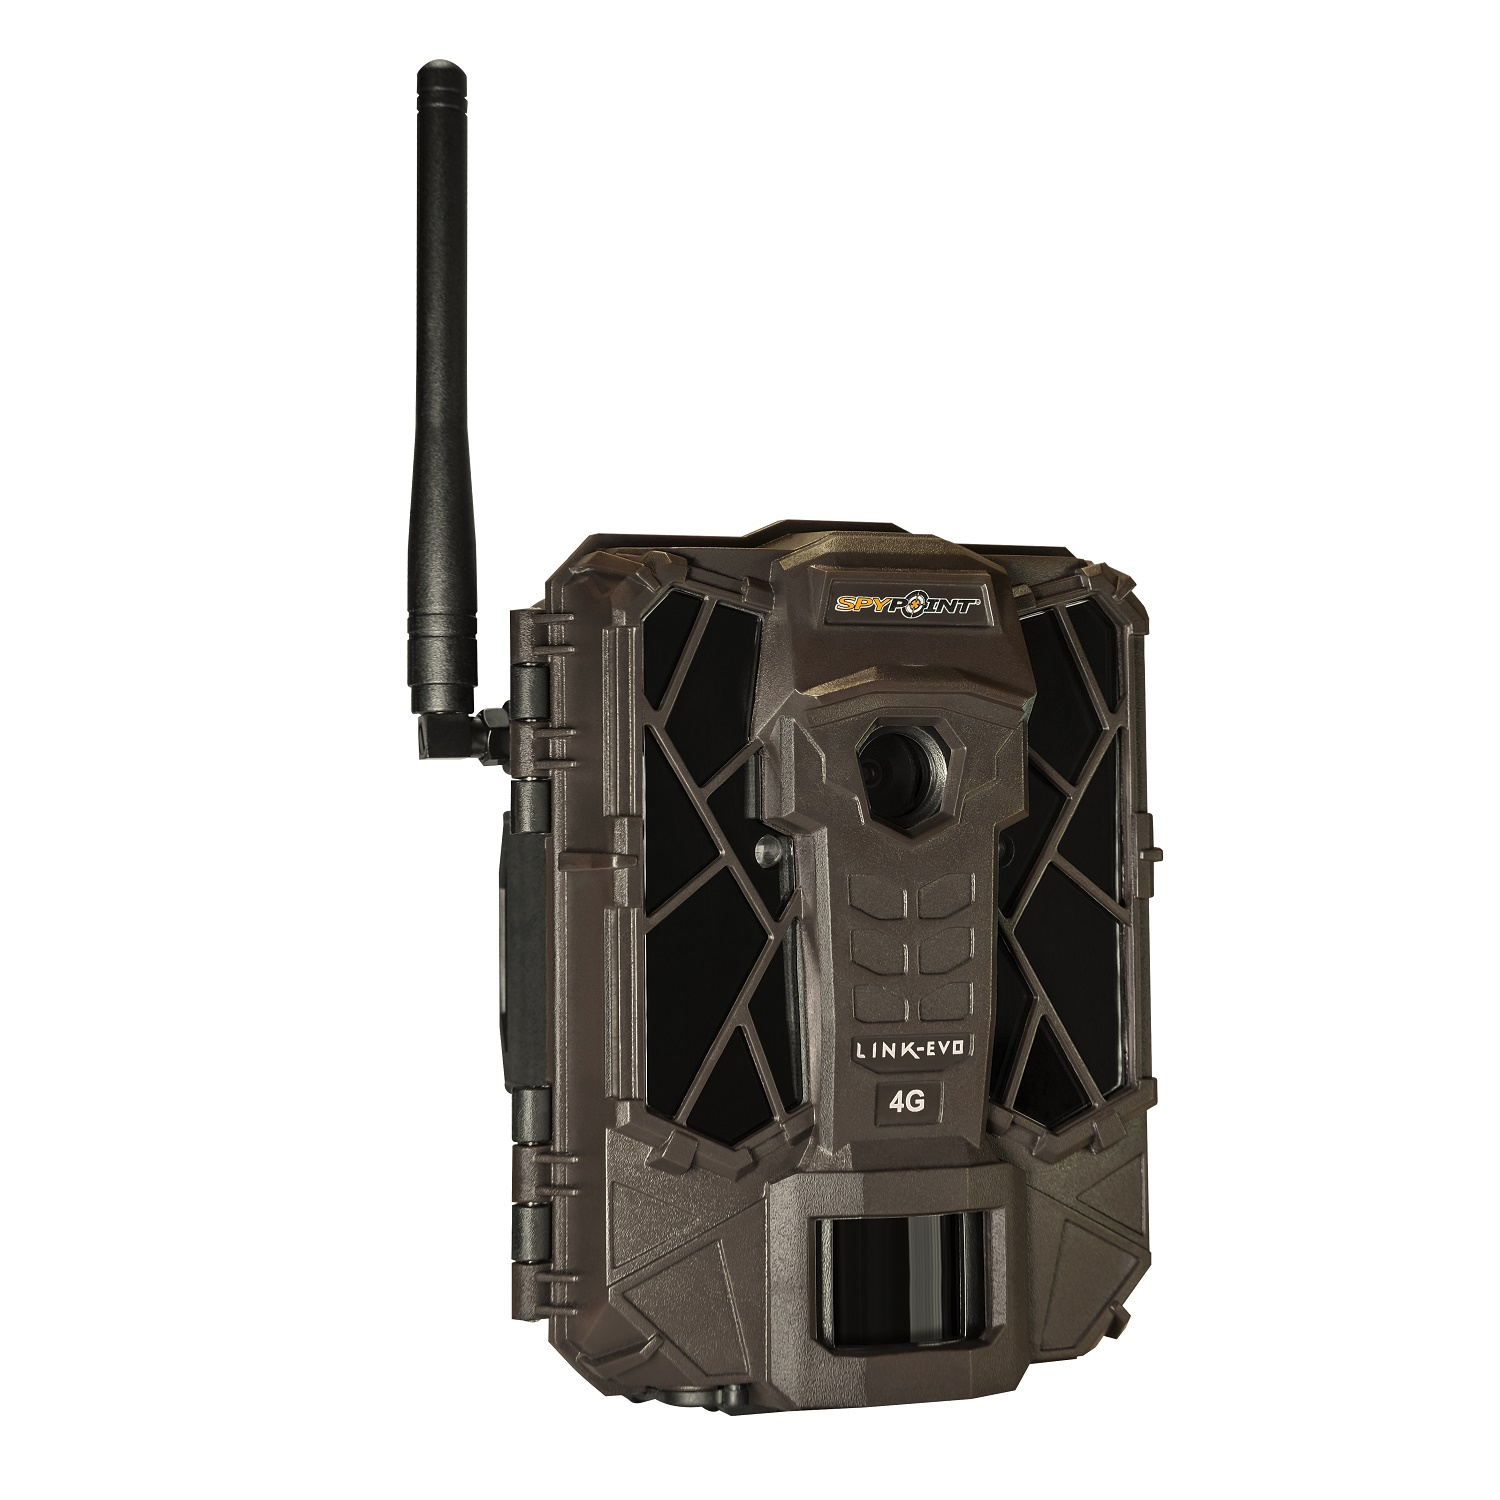 Spypoint 4G Cellular AT&T HD 12MP Low Glow IR Game Trail Camera - LINK-EVO